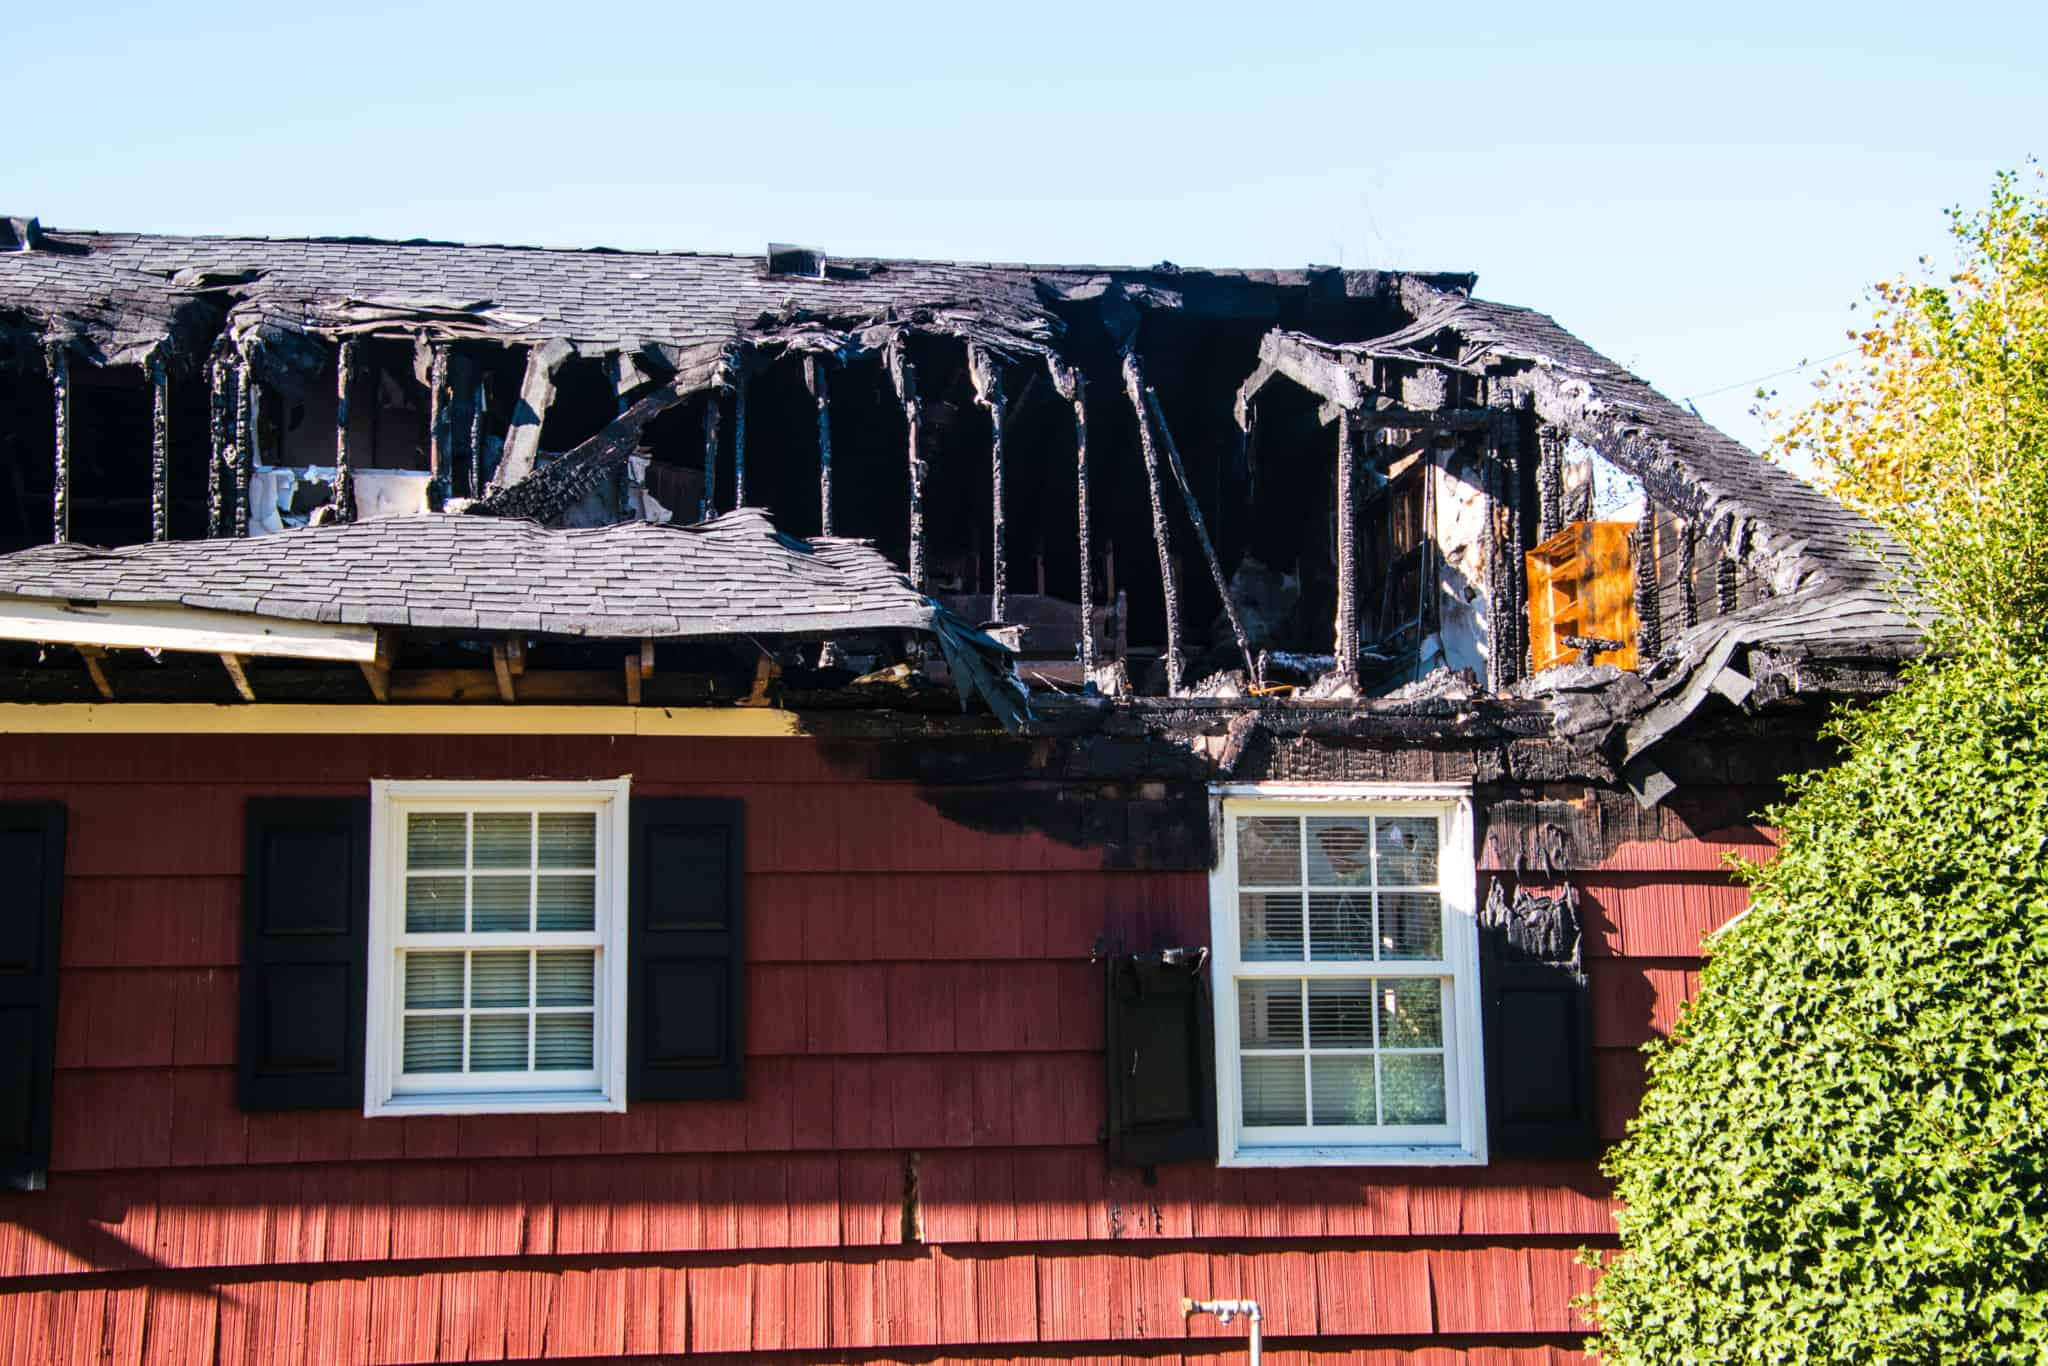 CleanMaster Services responds to property damaged by fire and smoke